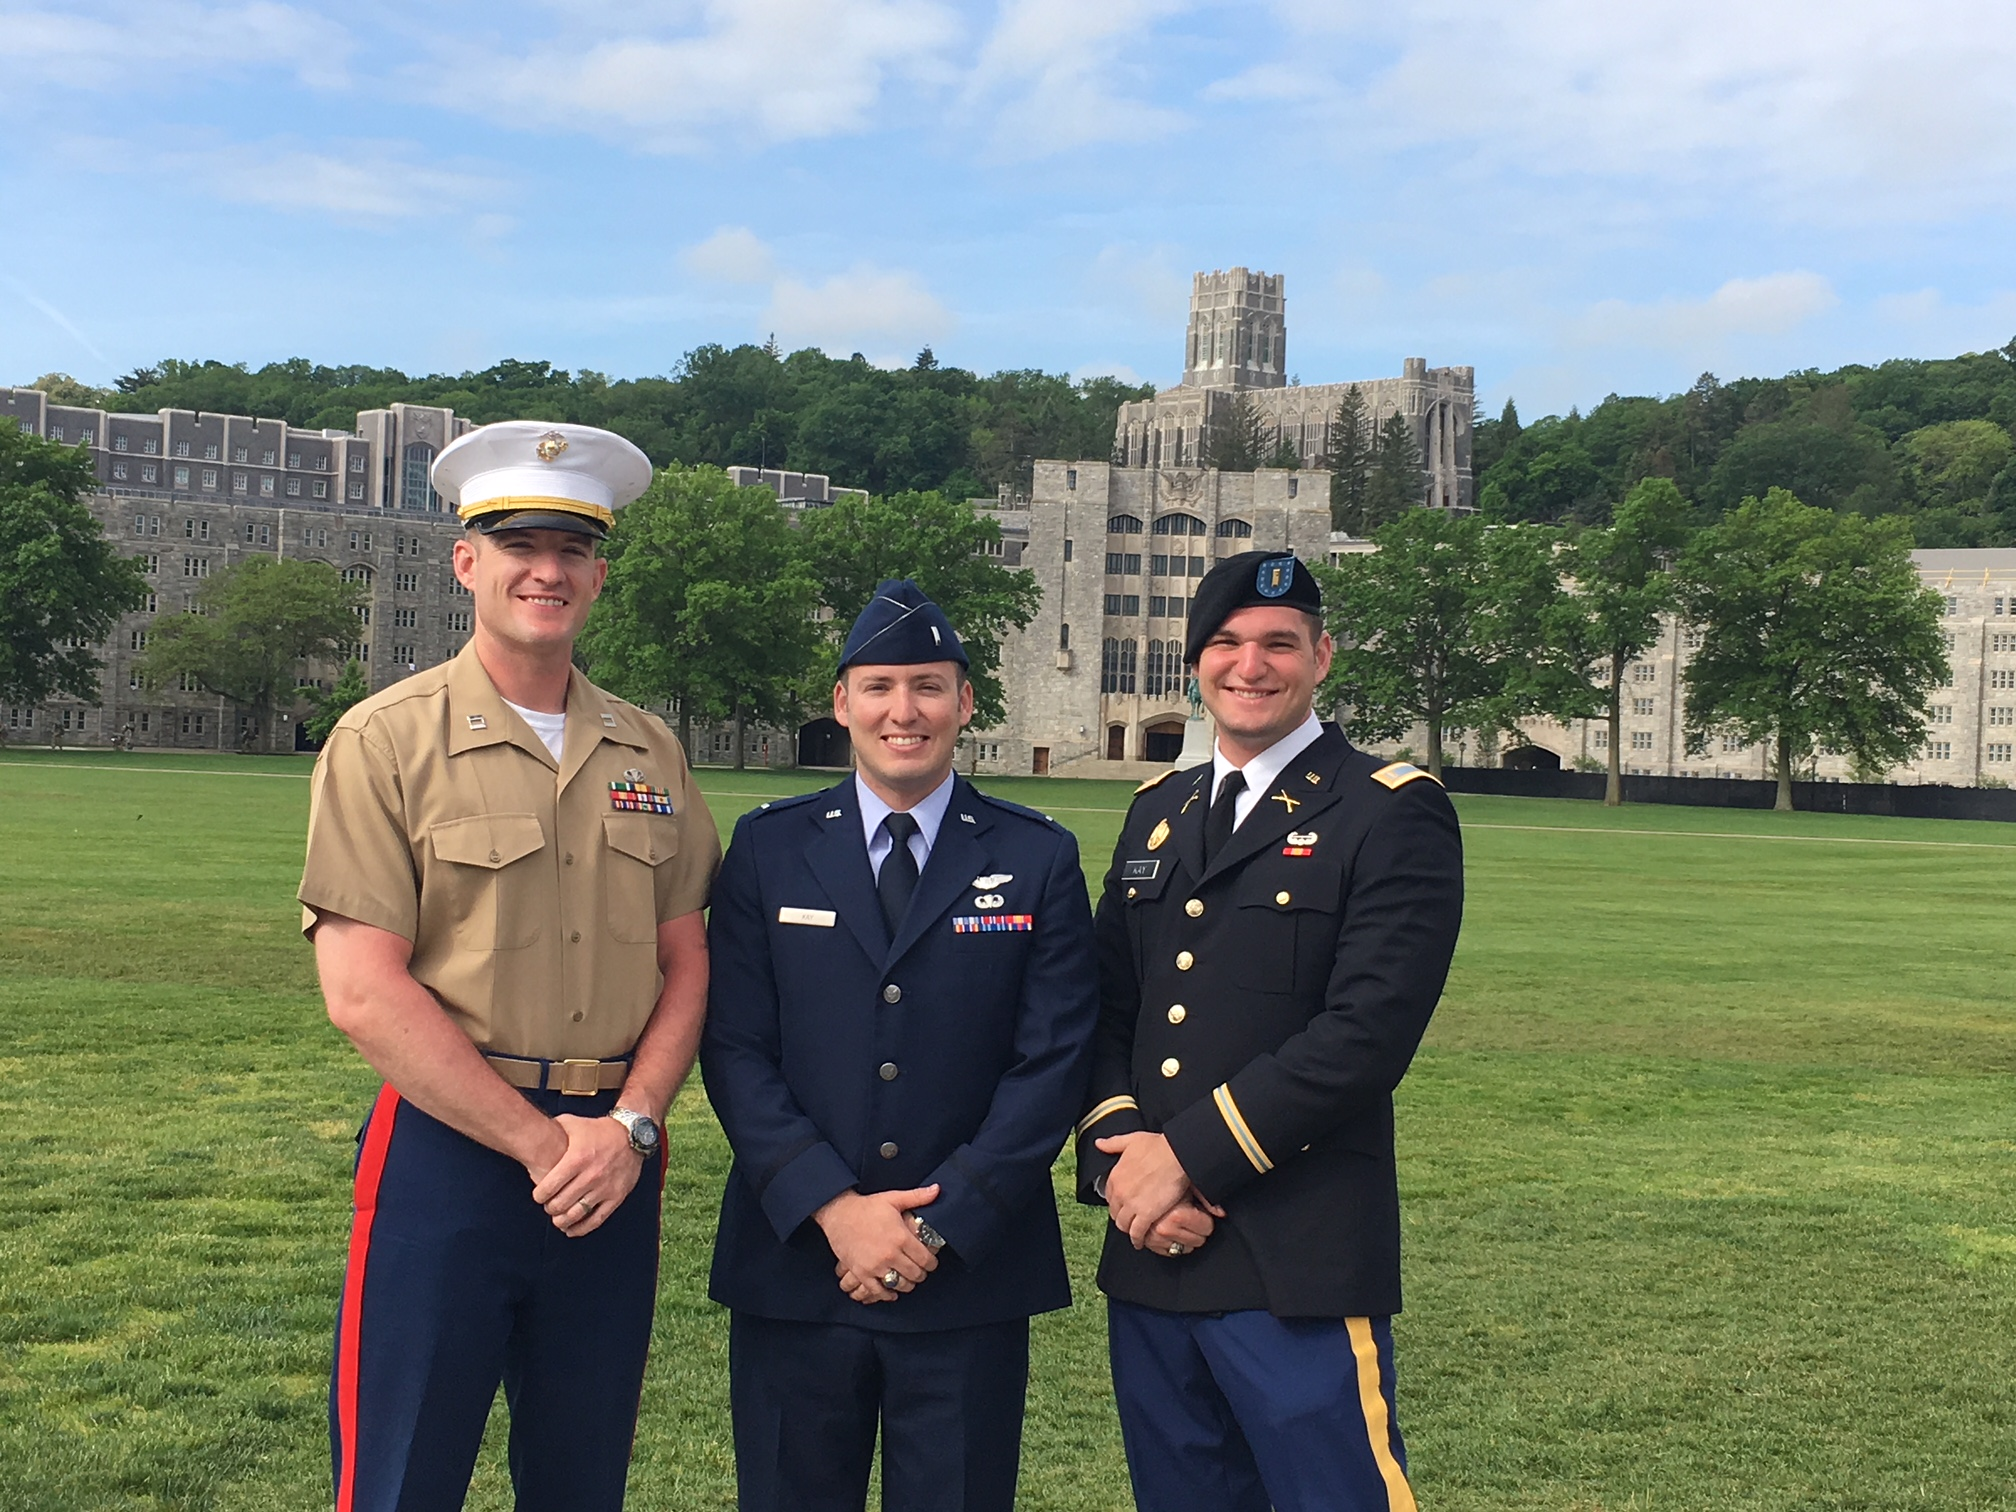 The Army Navy Game – It's All in The Family